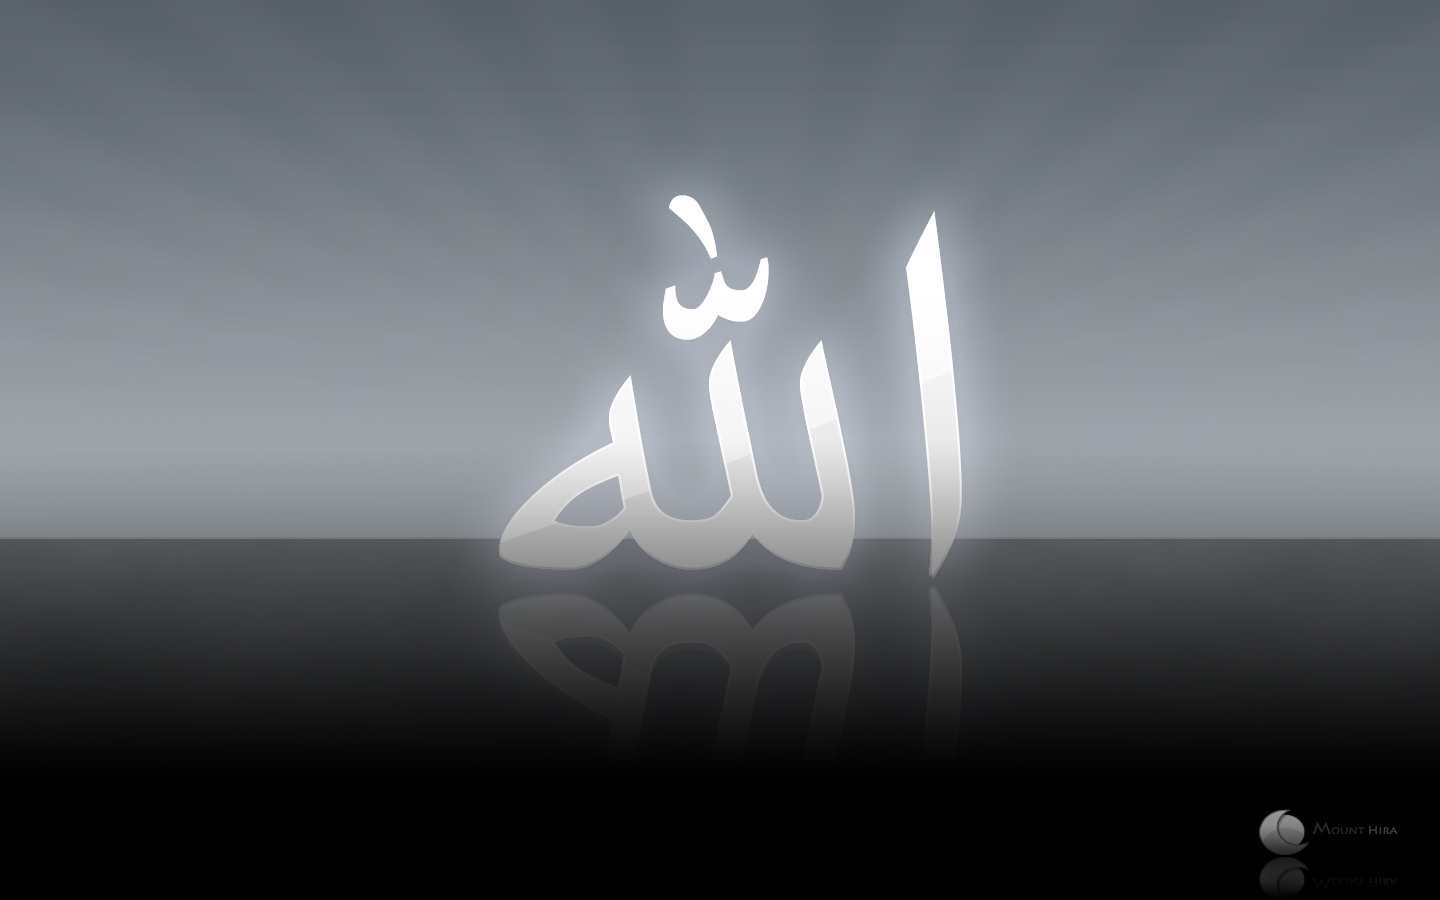 HD ISLAMIC WALLPAPERS 2012 WIDE SCREEN EDITION ALLAH NAME WALLPAPERS 1440x900